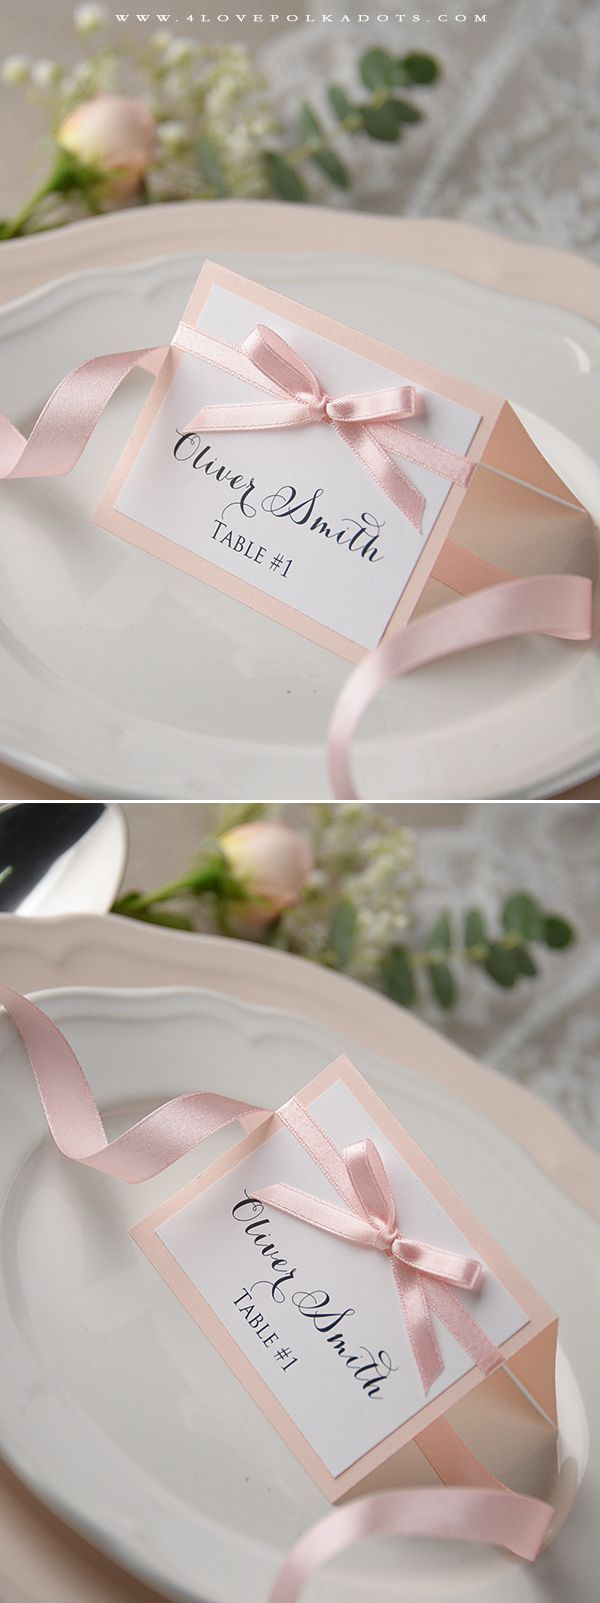 142 best Wedding Favours & Place Cards images on Pinterest | Wedding ...